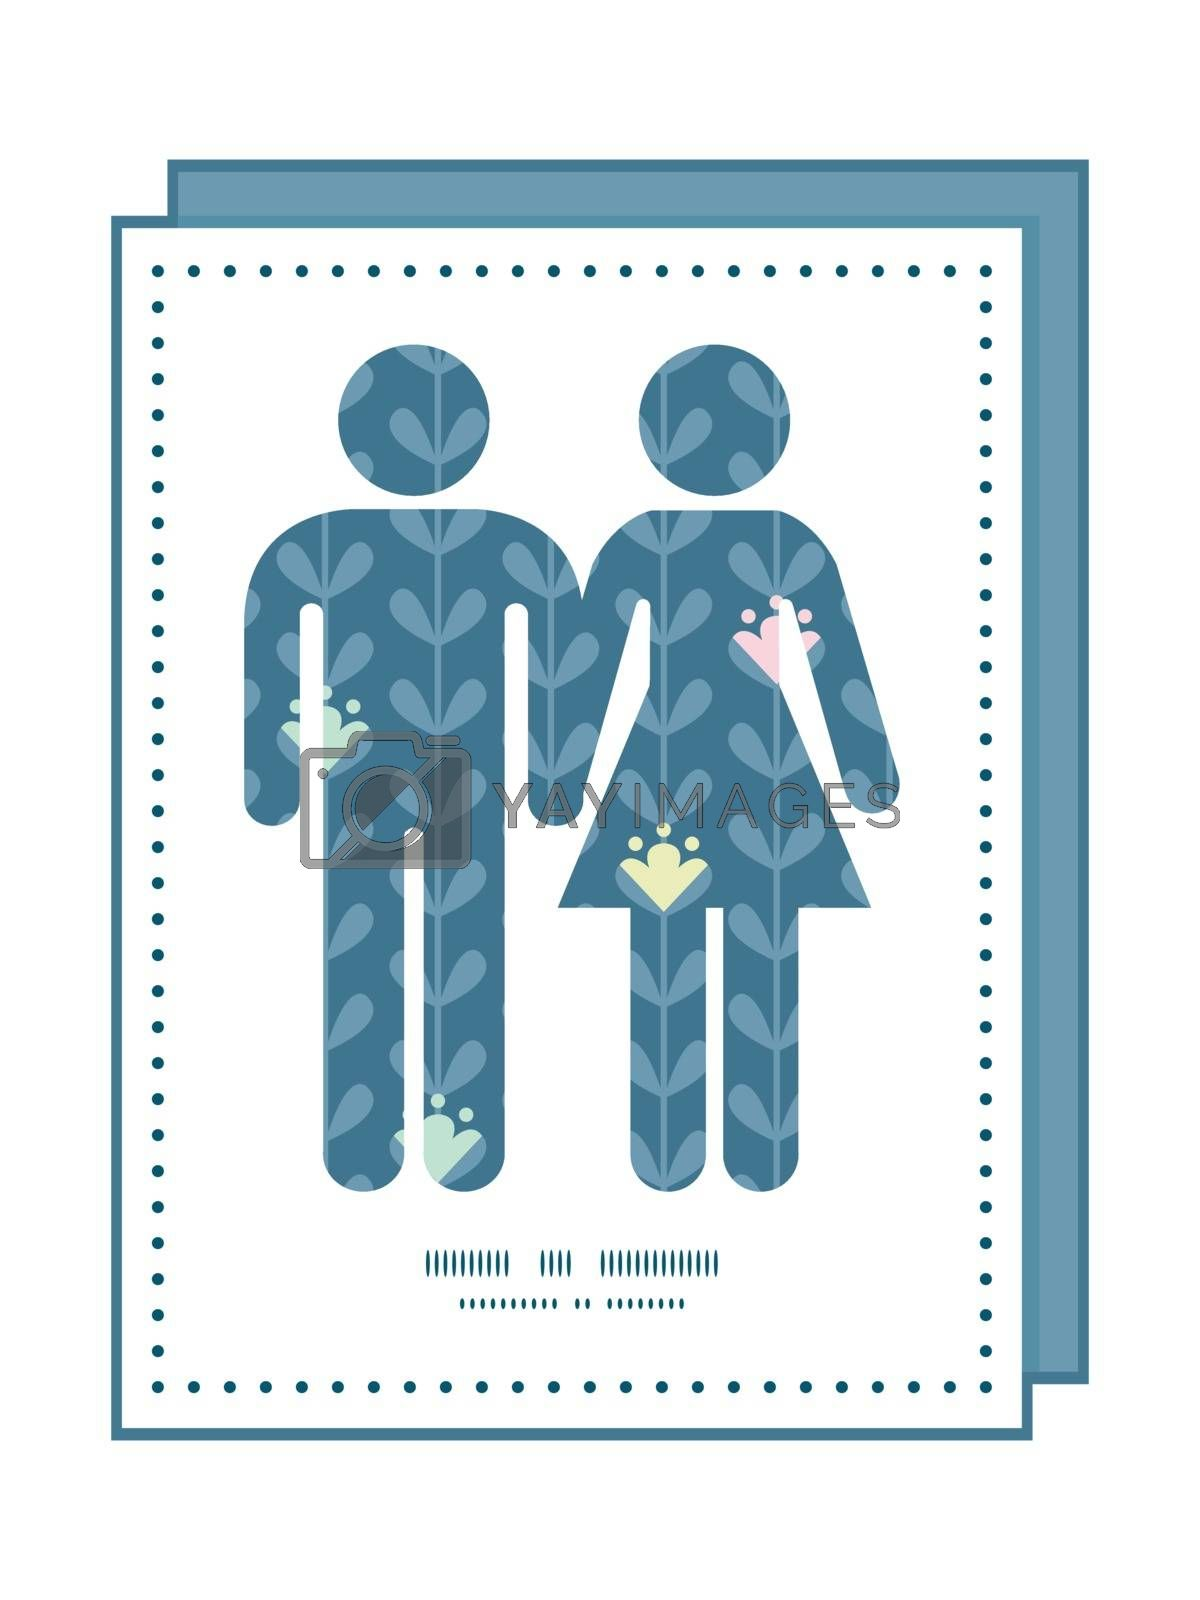 Vector blloming vines stripes couple in love silhouettes frame pattern invitation greeting card template graphic design